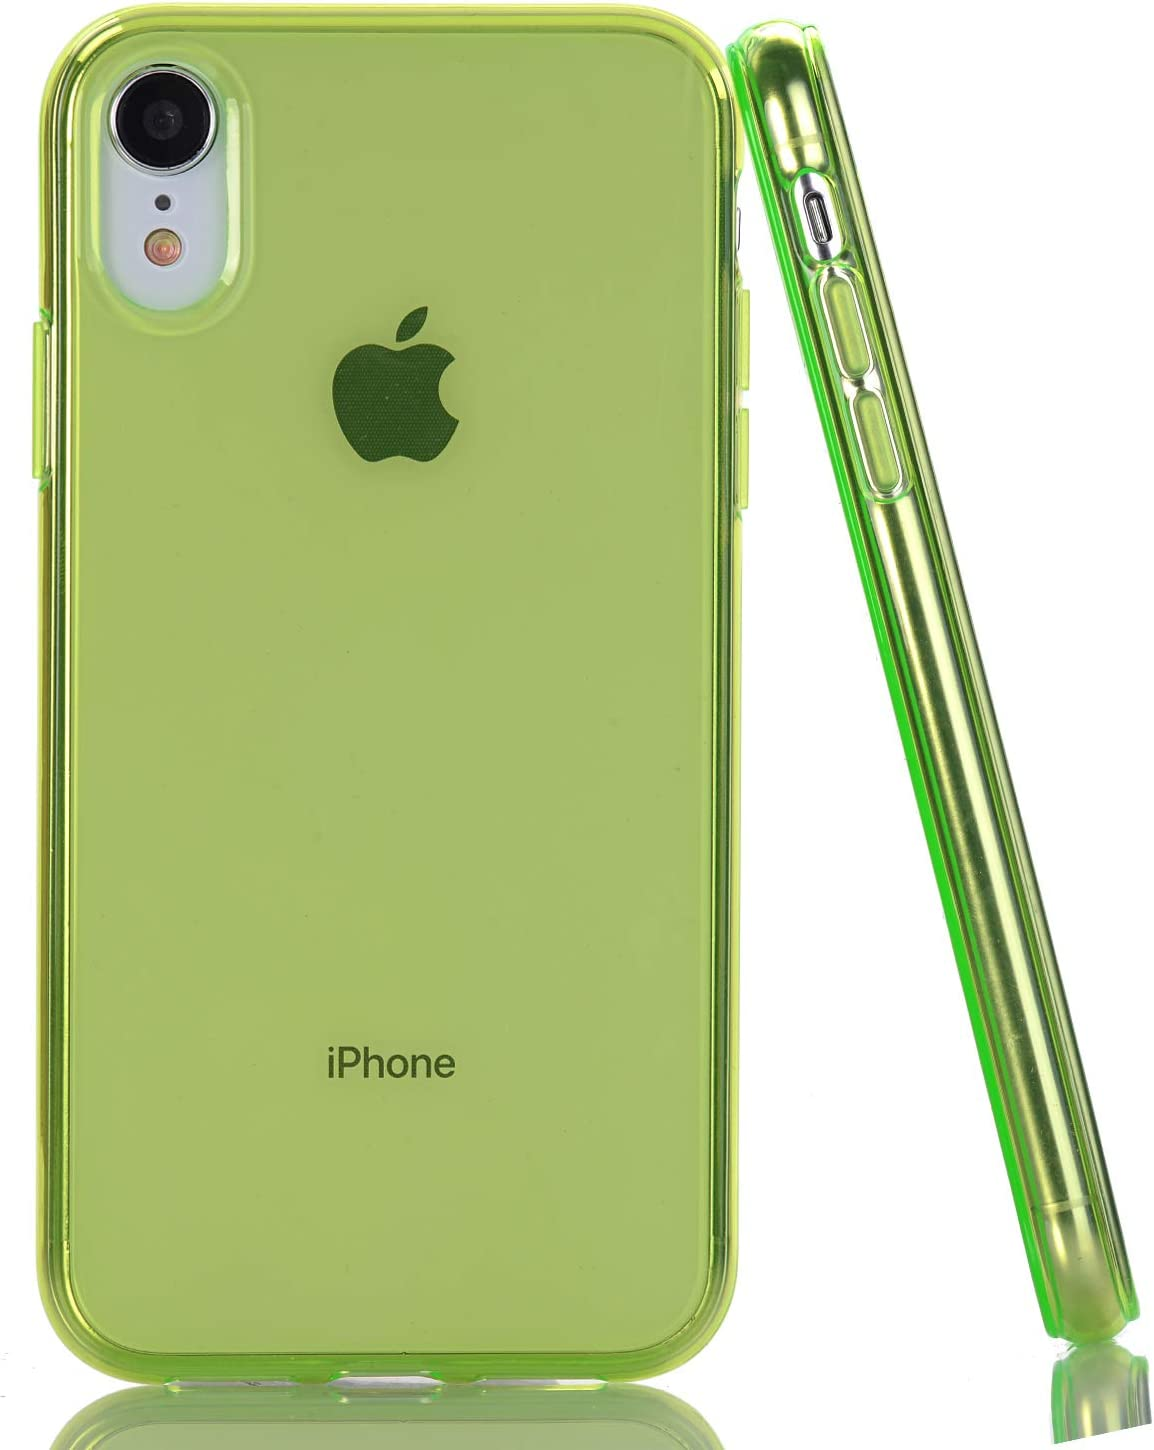 6.1 inch BAISRKE Green Clear Case for iPhone XR Slim TPU Bumper Glossy Flexible Soft Silicone Rubber Compatible with iPhone XR